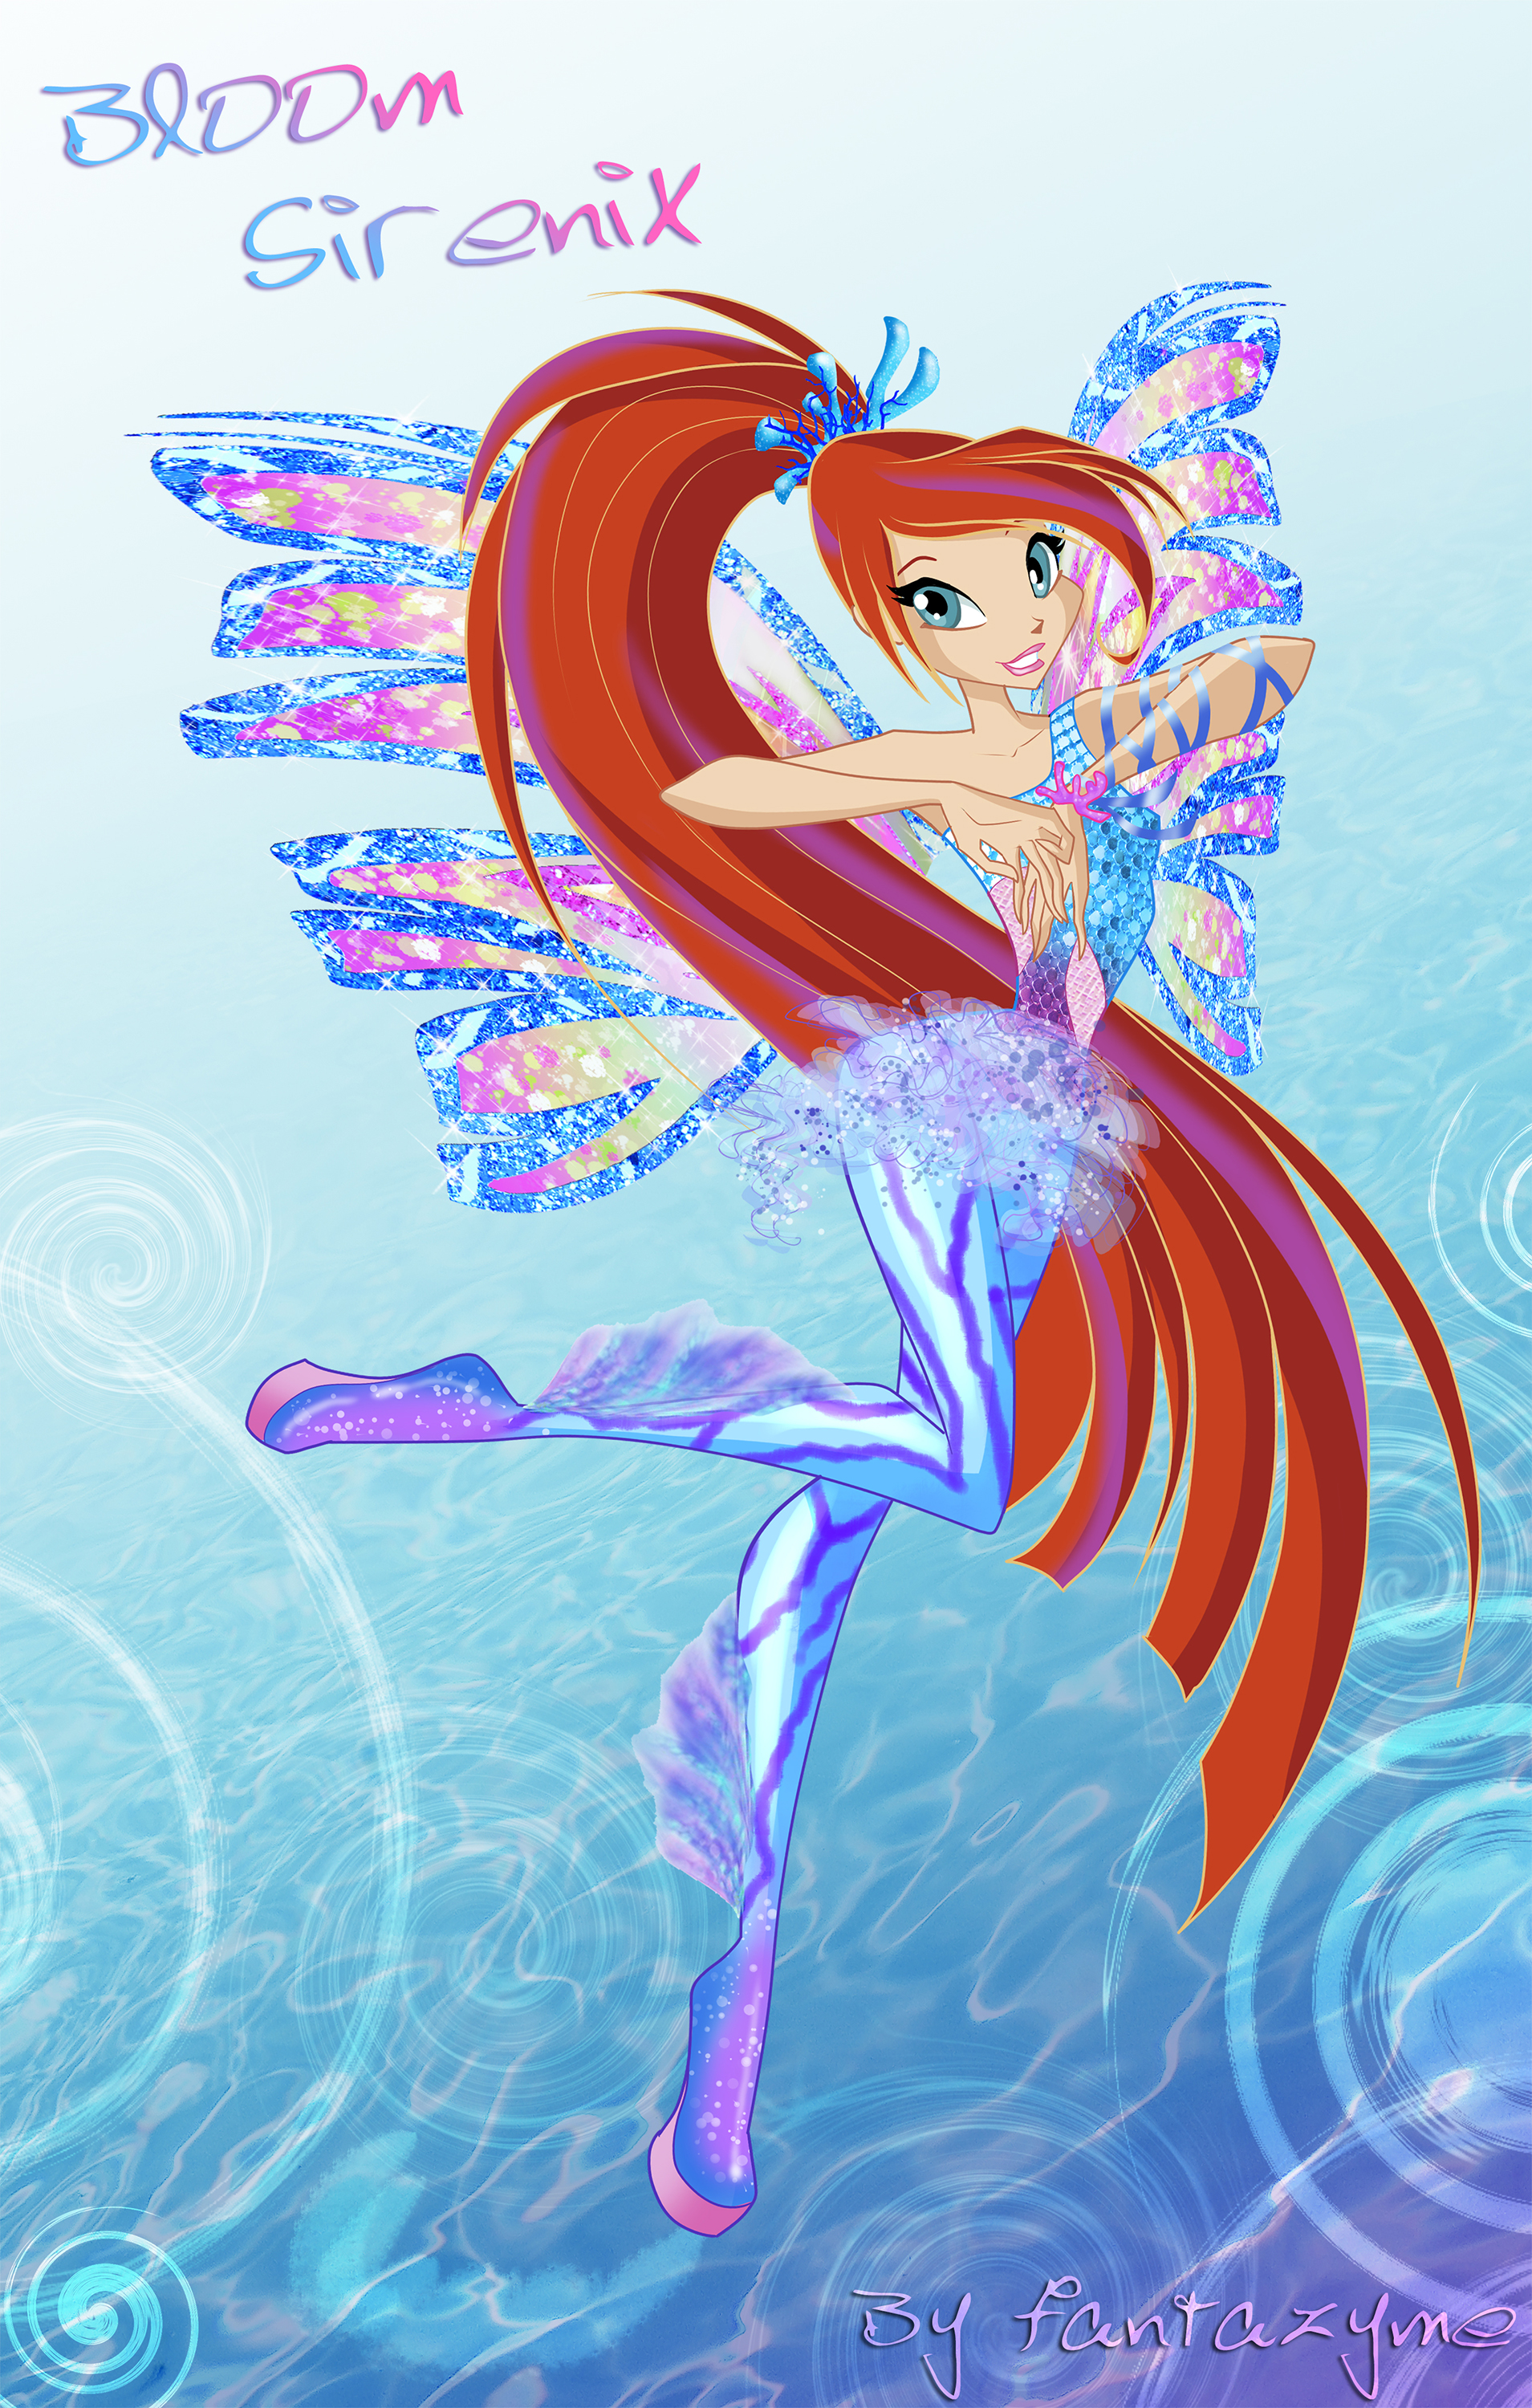 The winx club winx club season 5 bloom sirenix винкс клуб